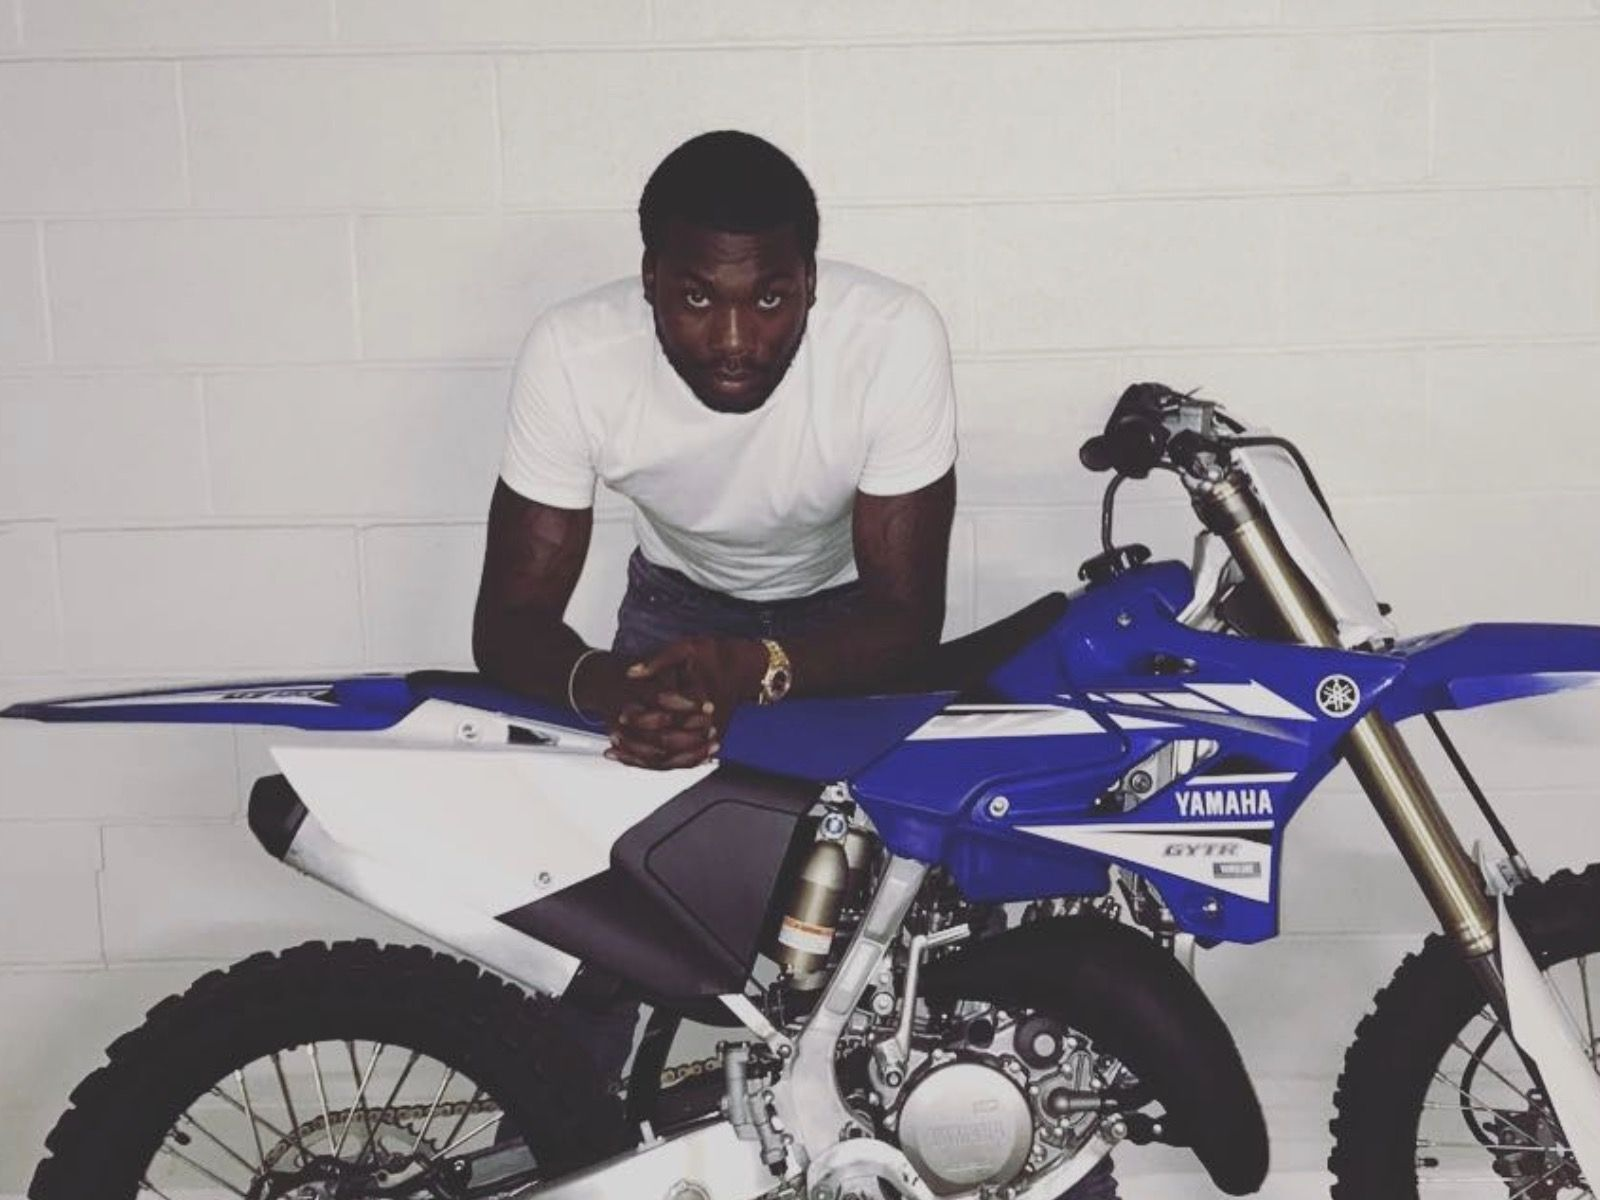 Meek Mill Dirt Bike Wallpapers Top Free Meek Mill Dirt Bike